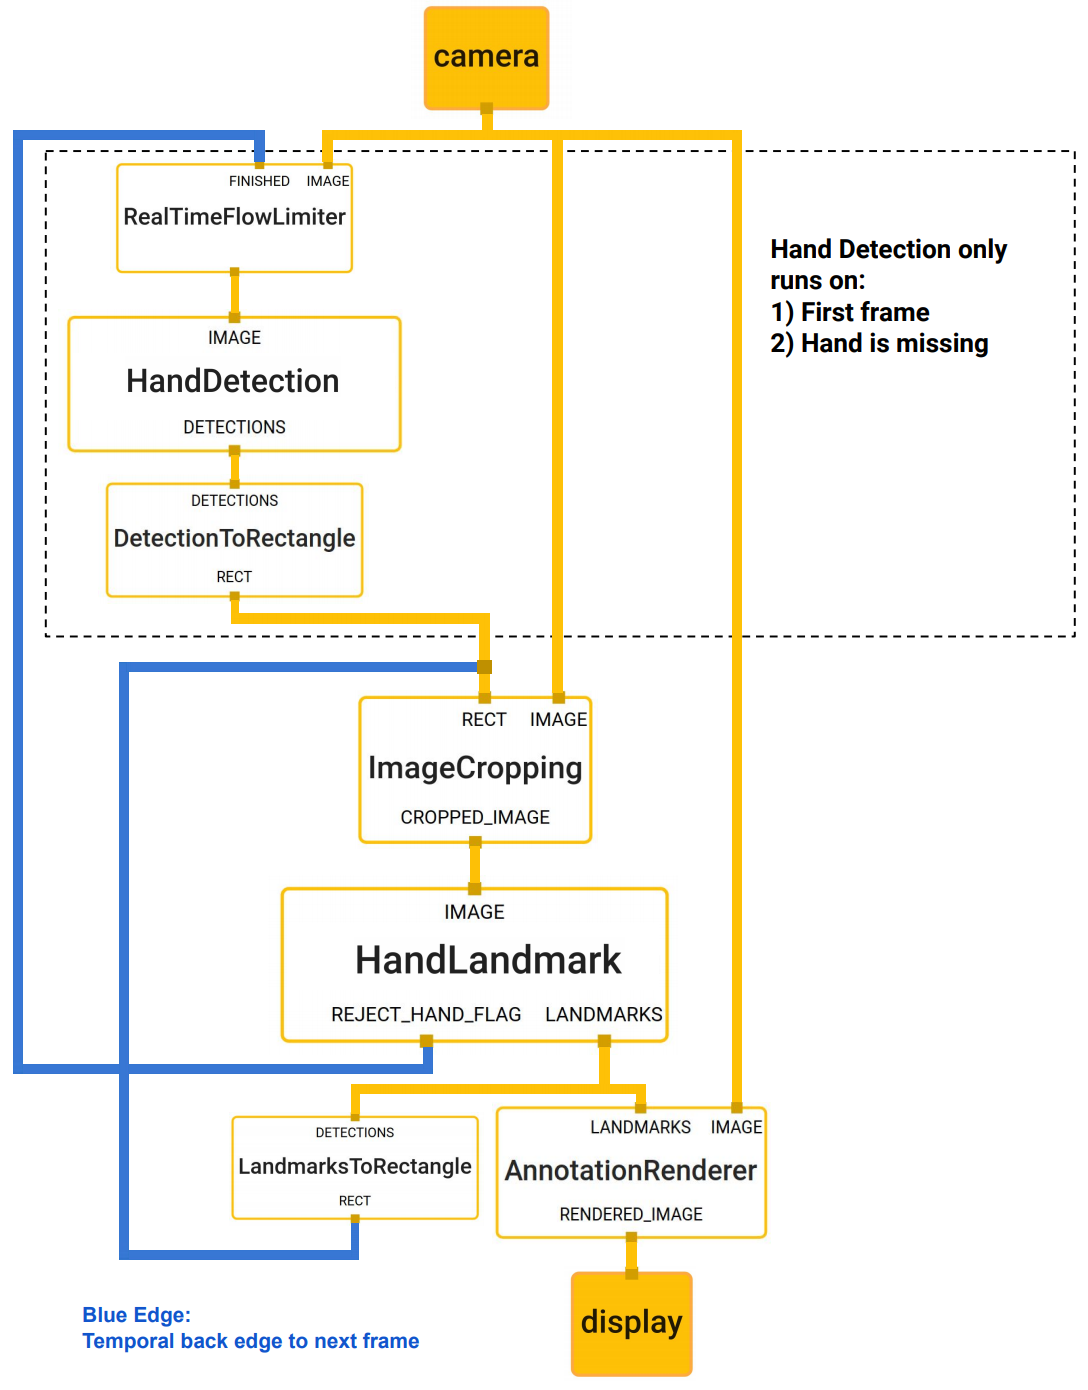 Google AI Blog: On-Device, Real-Time Hand Tracking with